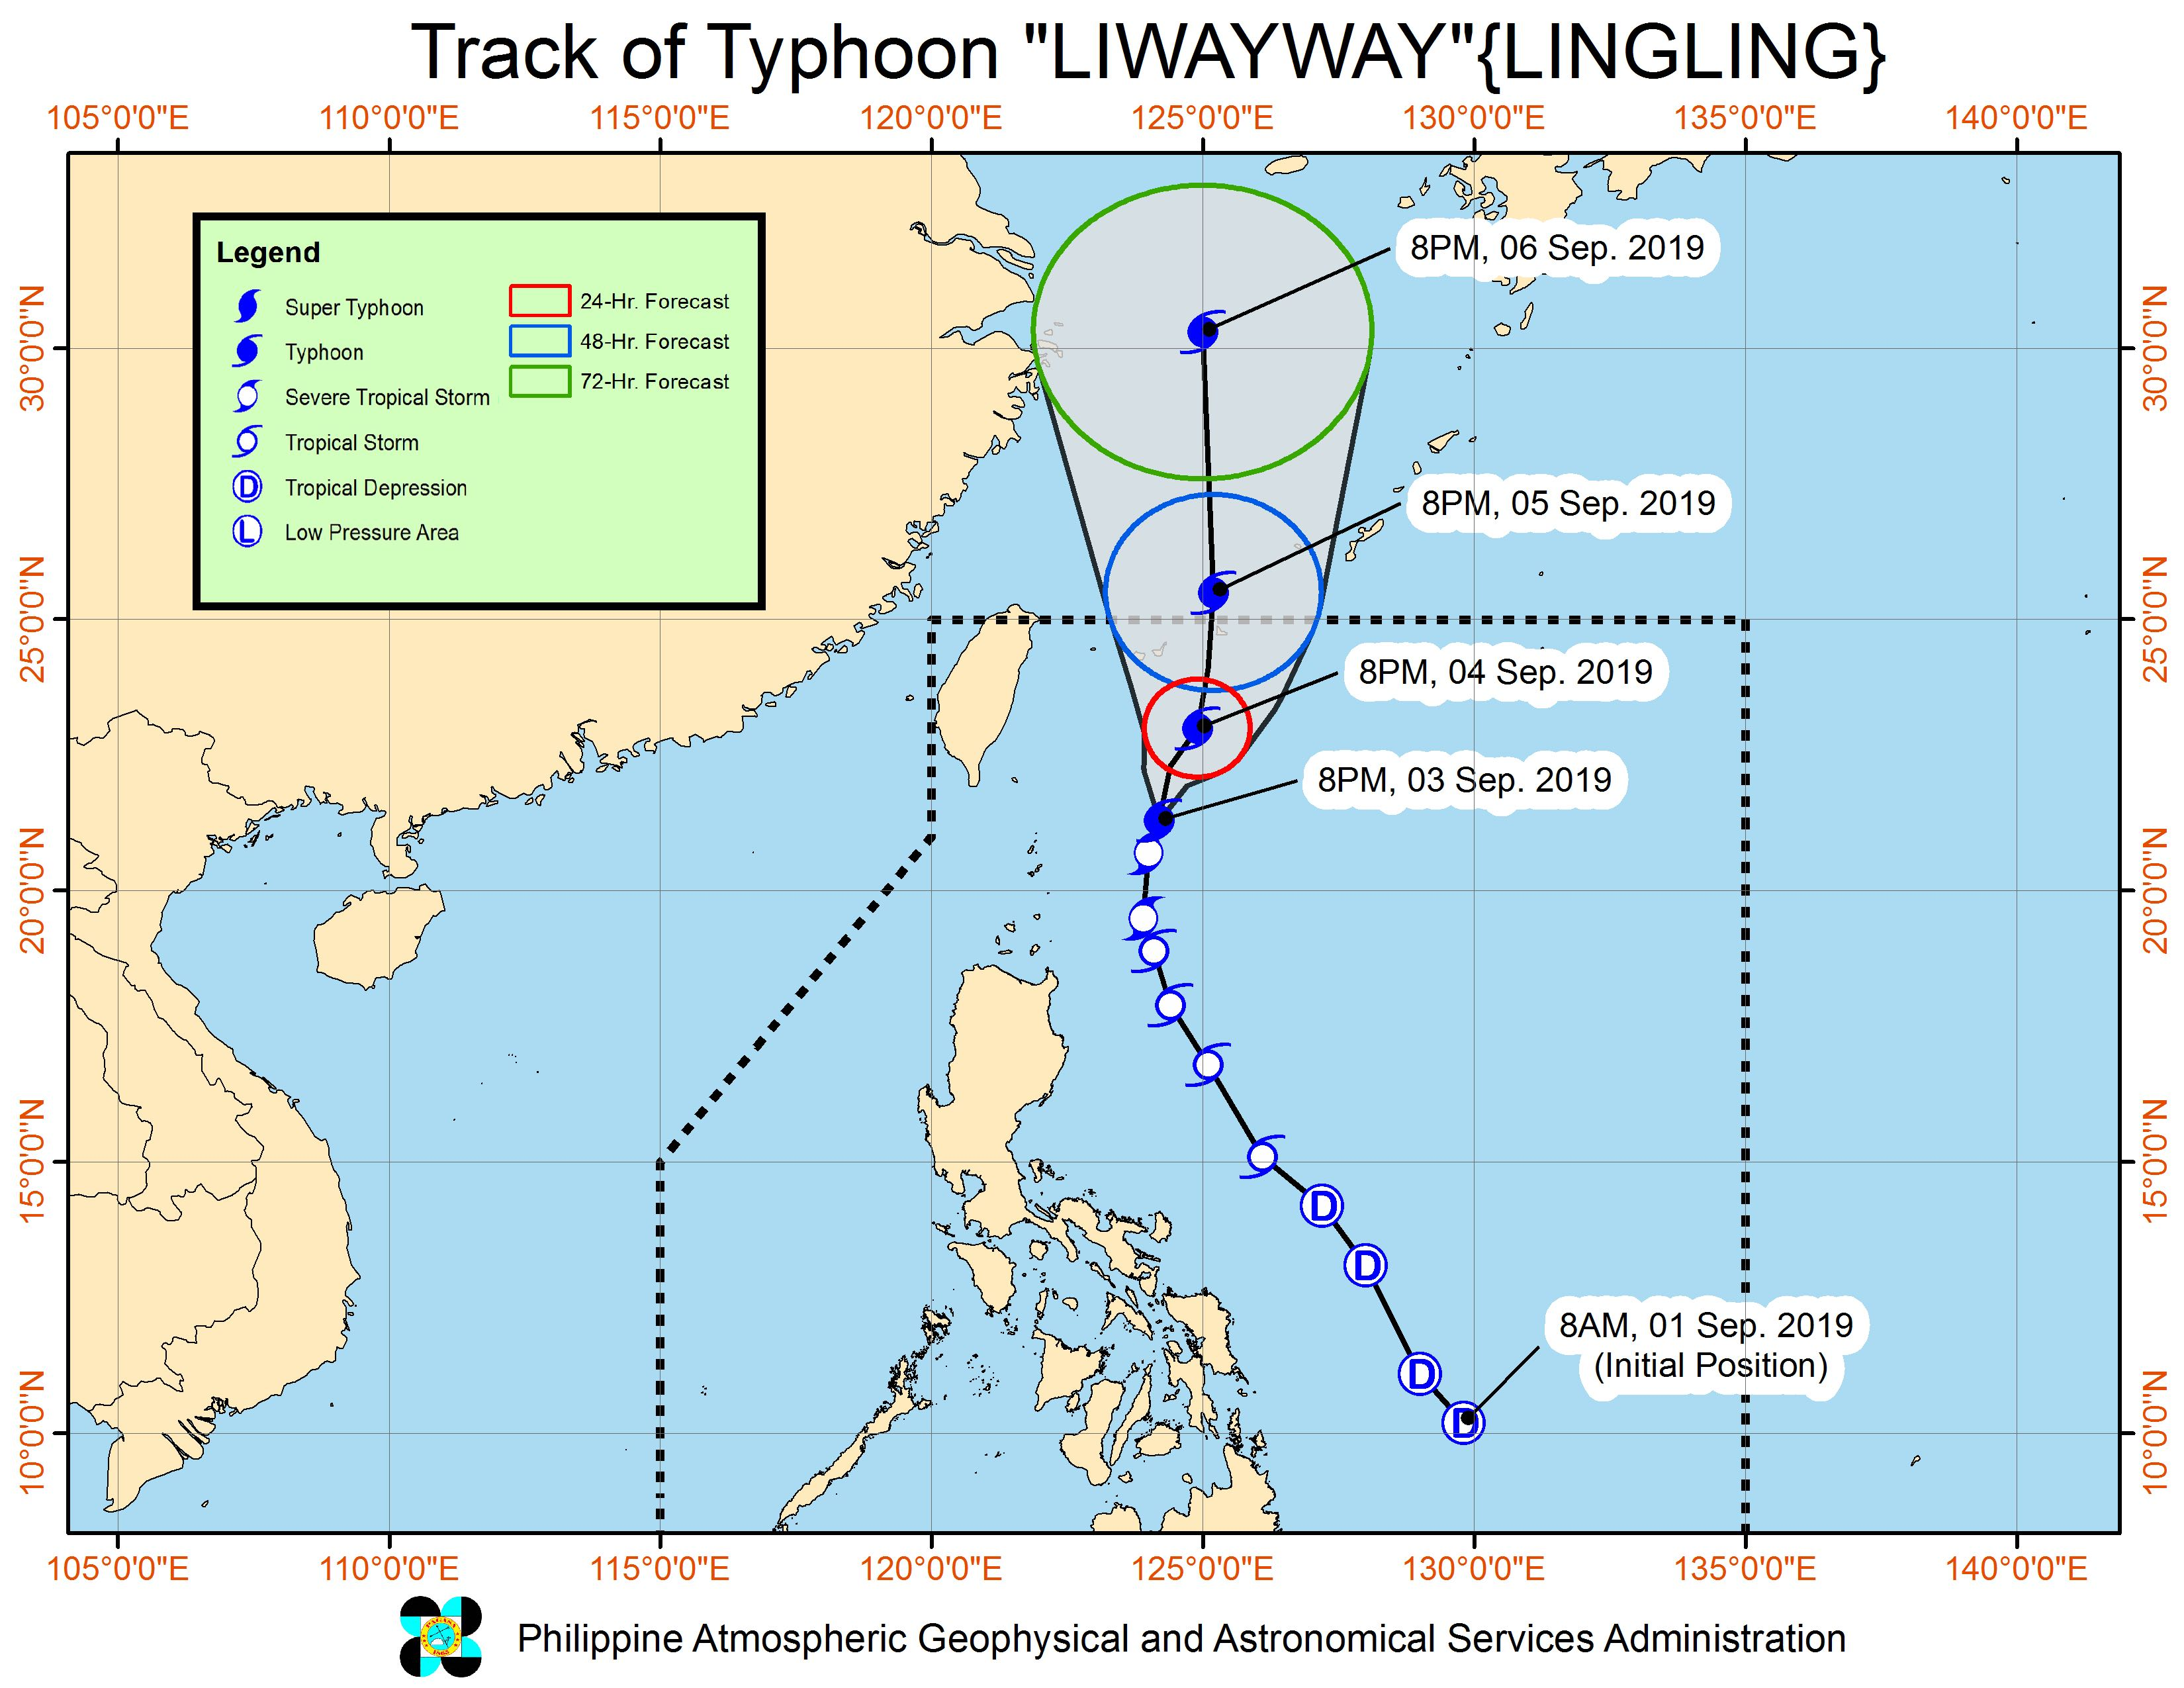 Forecast track of Typhoon Liwayway (Lingling) as of September 3, 2019, 11 pm. Image from PAGASA